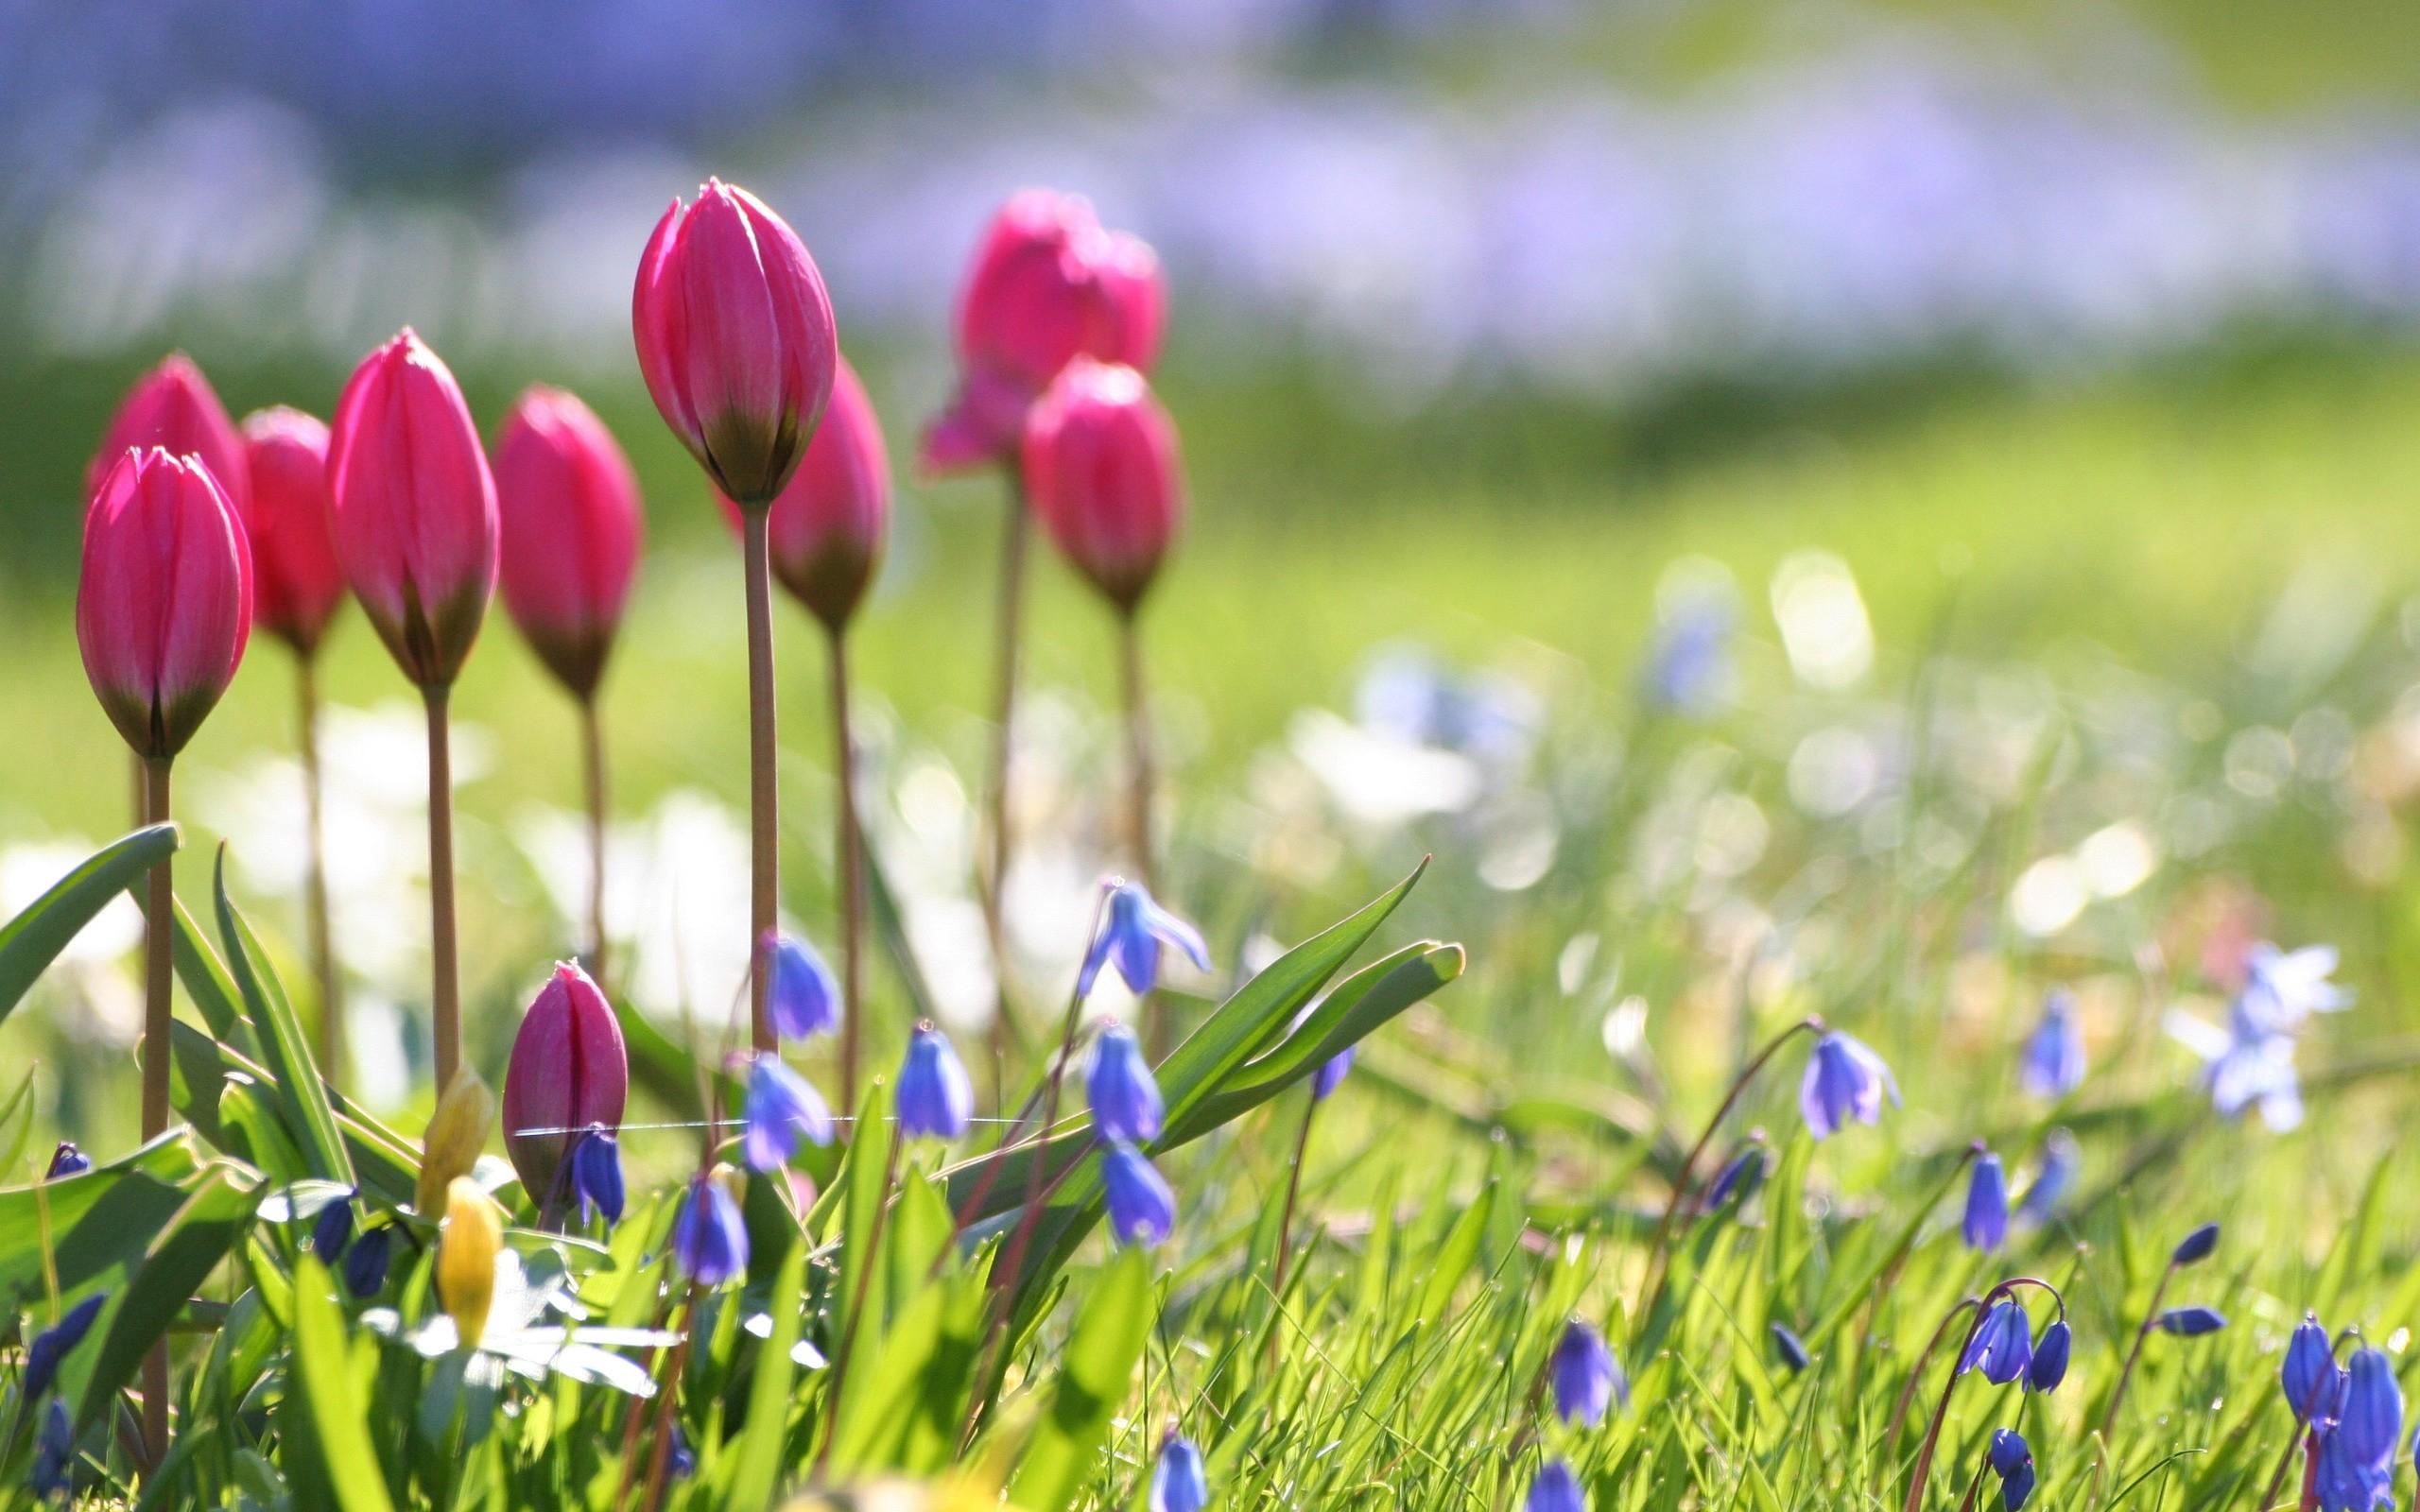 Wallpaperwiki Beautiful Nature Spring Flower Wallpaper PIC WPD0012883 By Billion Photos